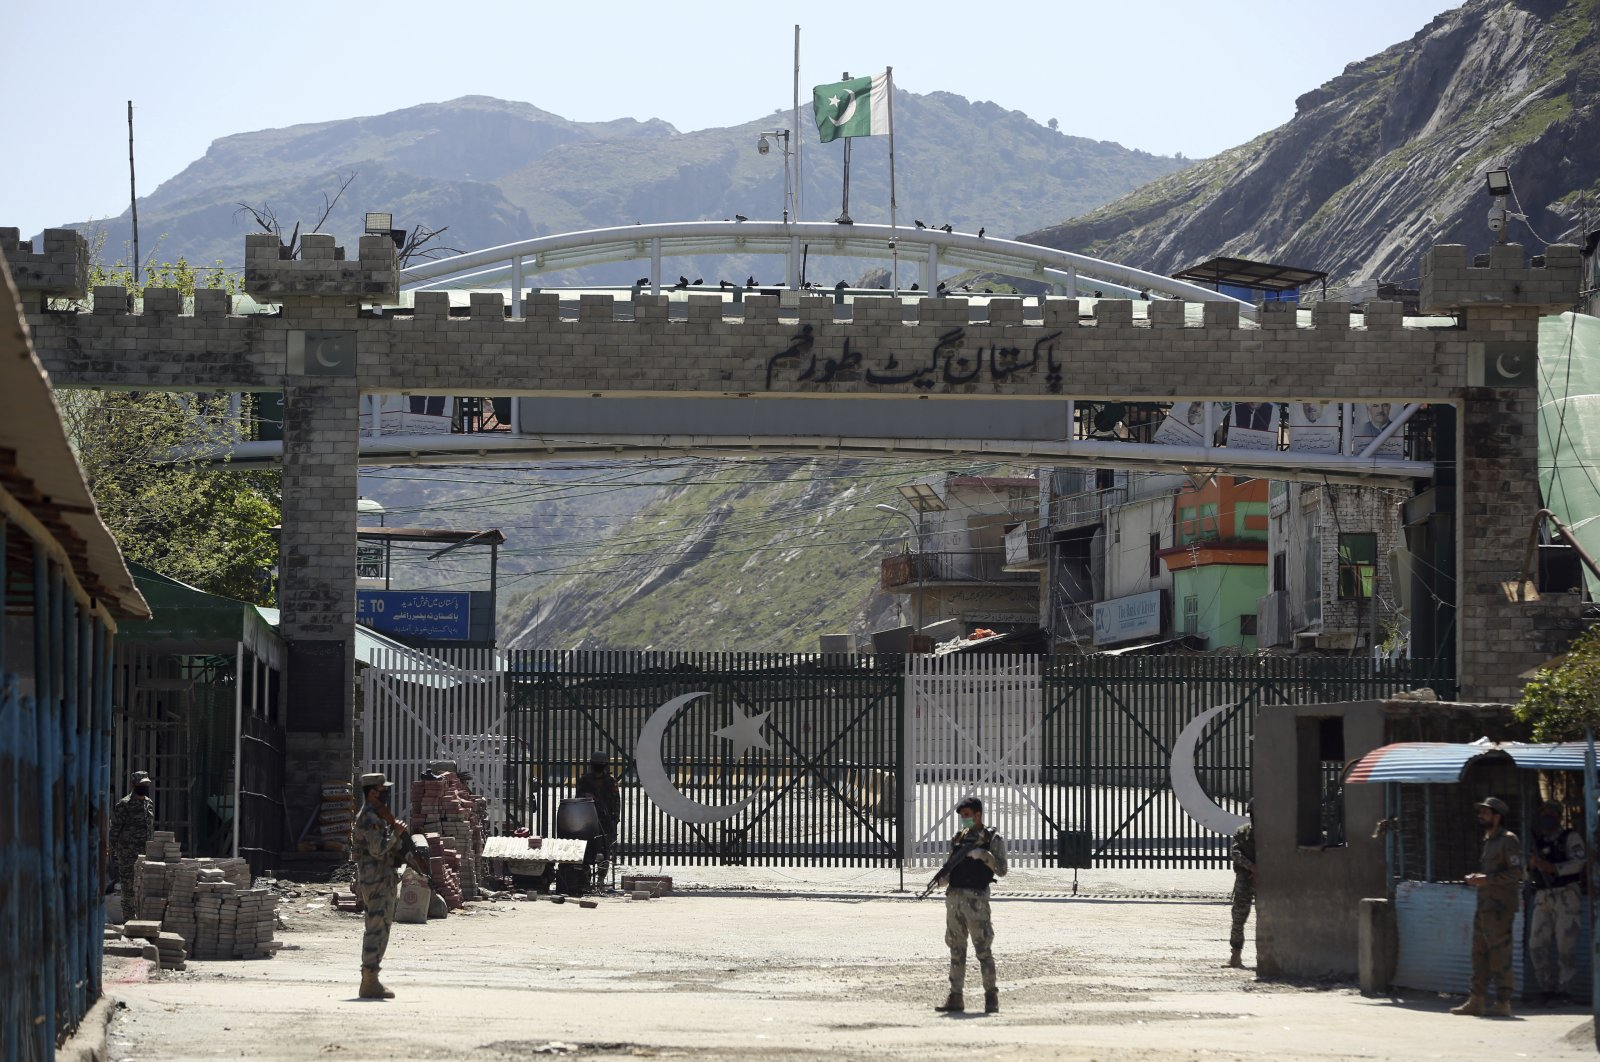 Afghan border police stand guard at the Torkham border crossing between Afghanistan and Pakistan, Saturday, April 4, 2020. (AP)